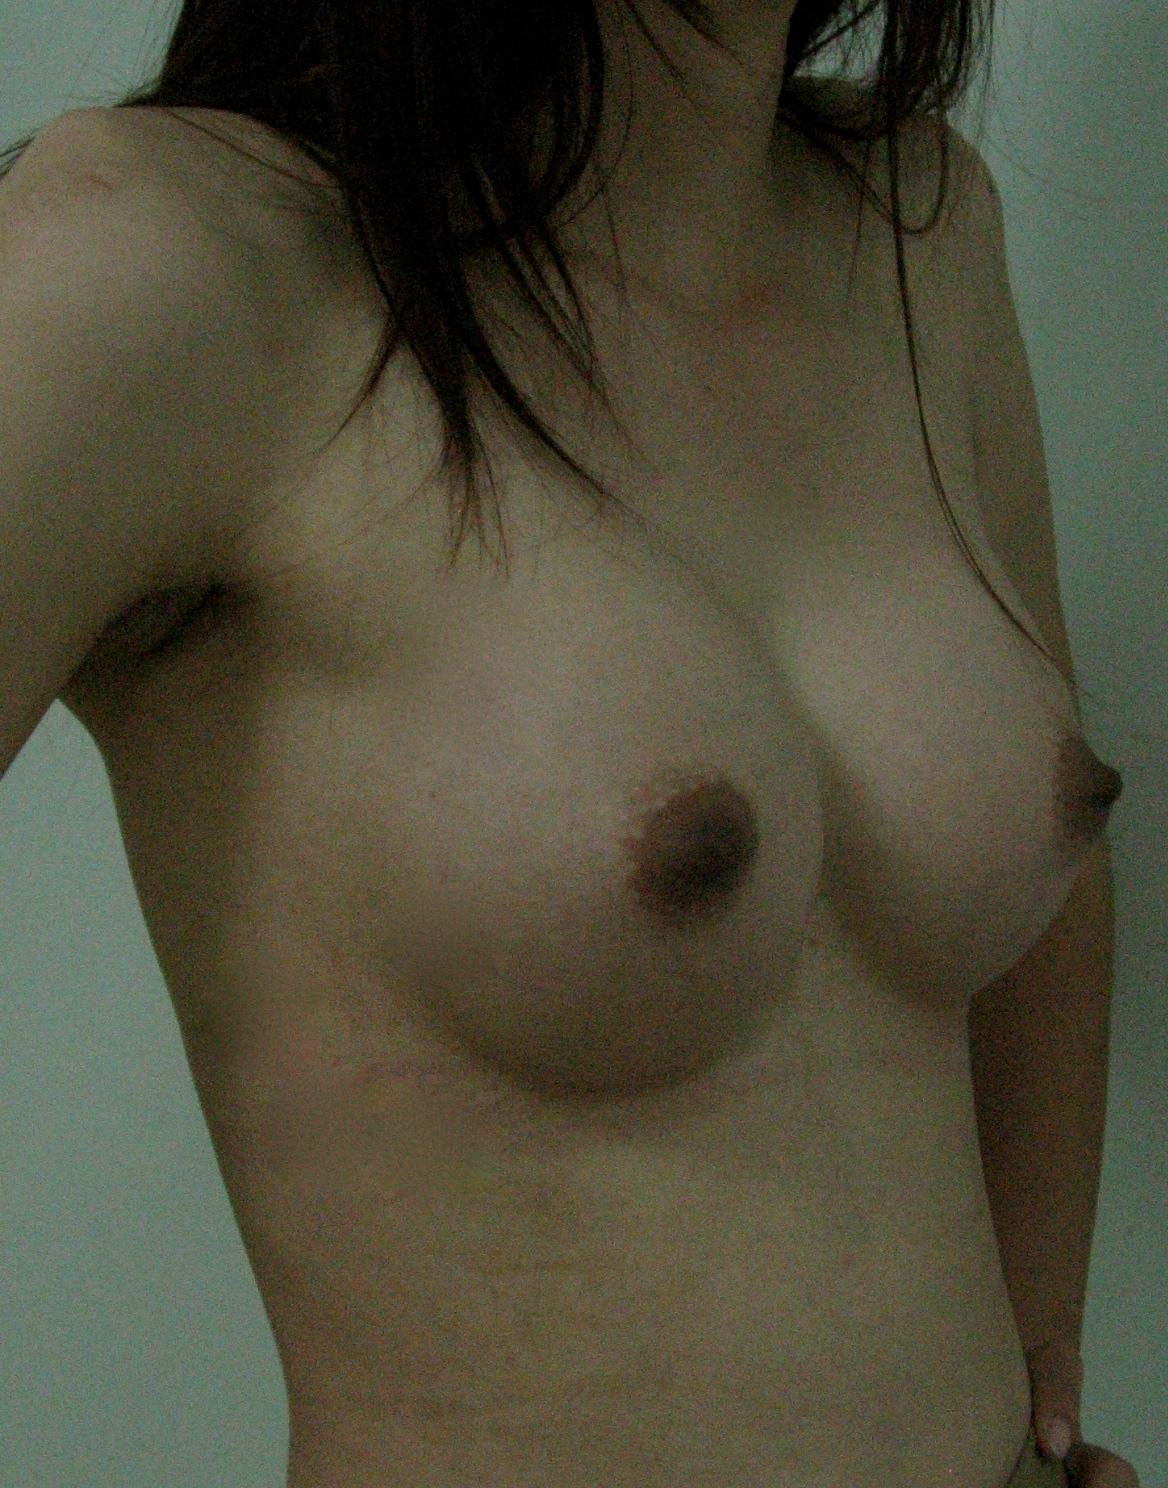 Teen Breasts Development 60